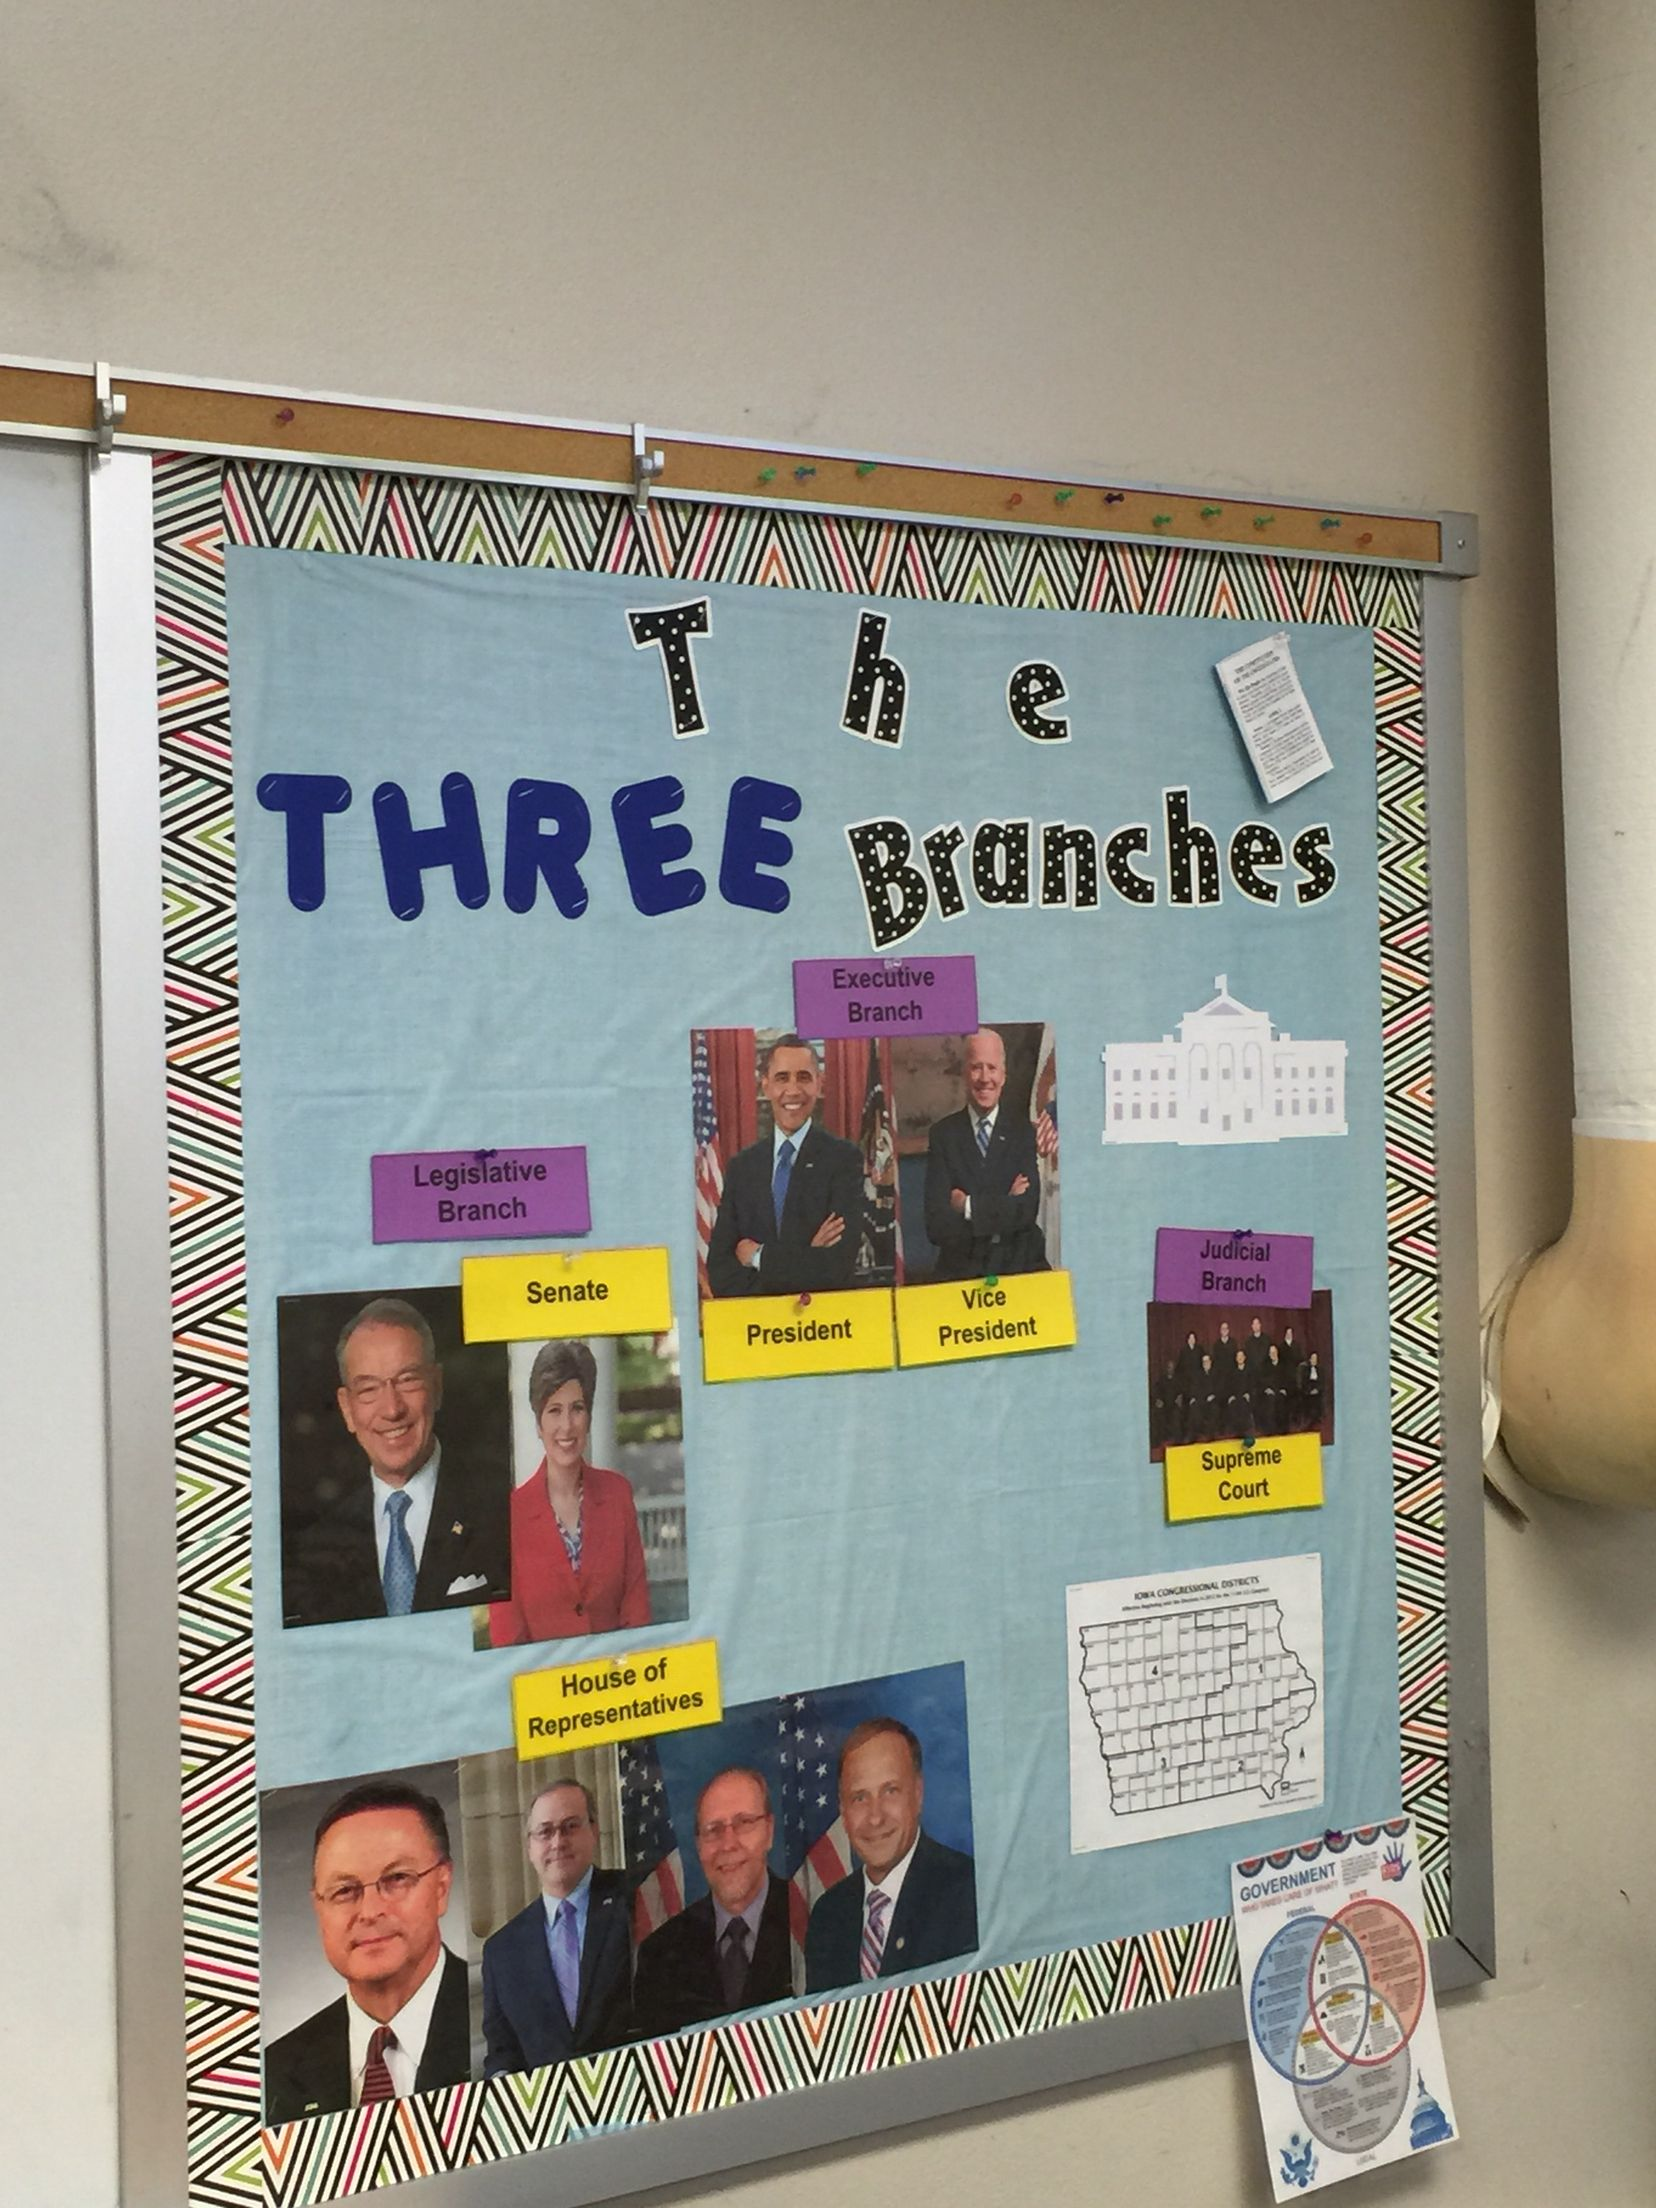 Social Studies Classroom Decoration : Three branches of government bulletin board with the